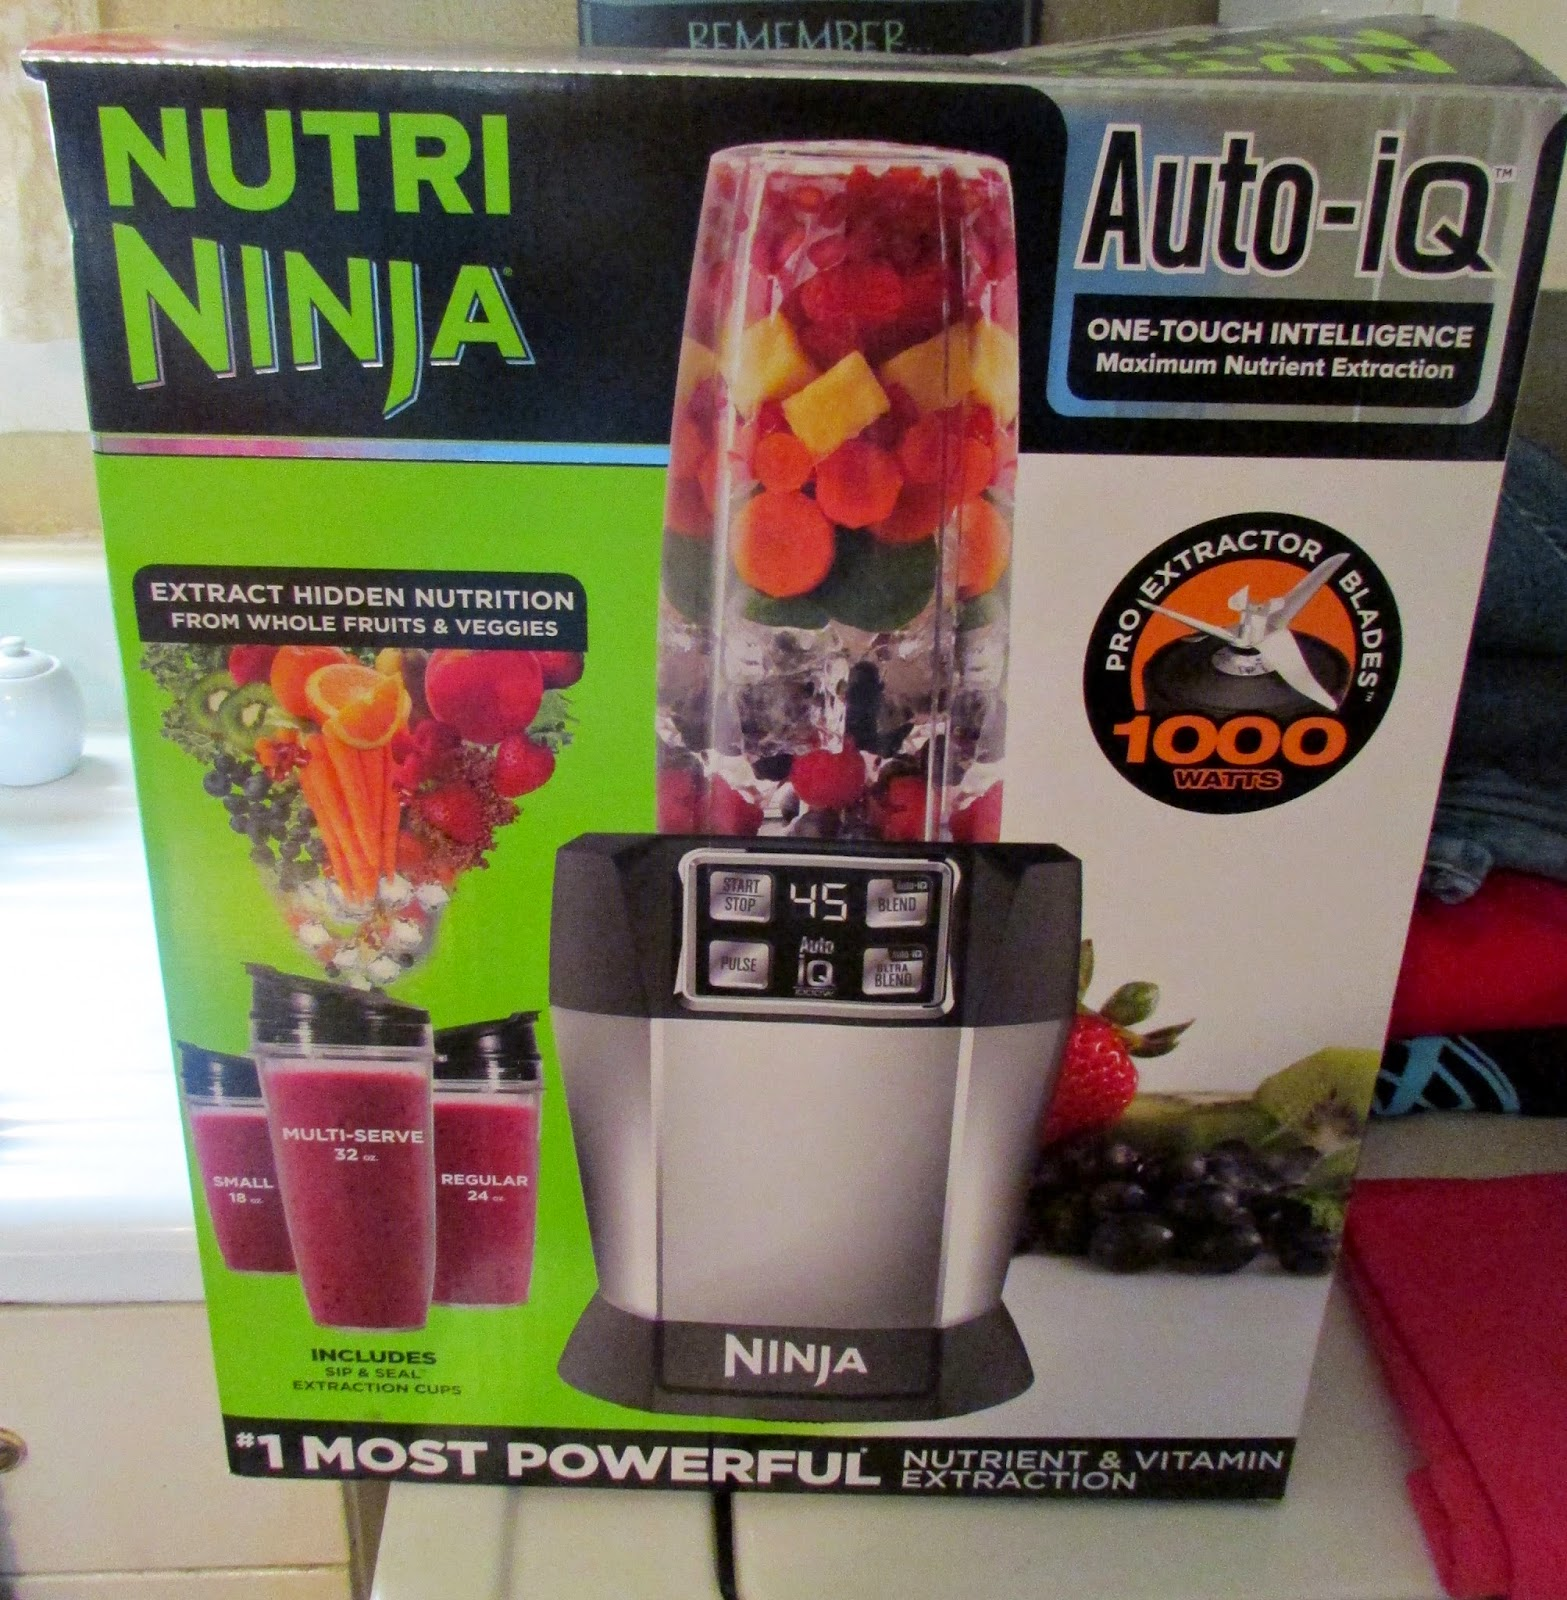 Delicious Smoothies And Juices With The Nutri Ninja Auto Iq Review